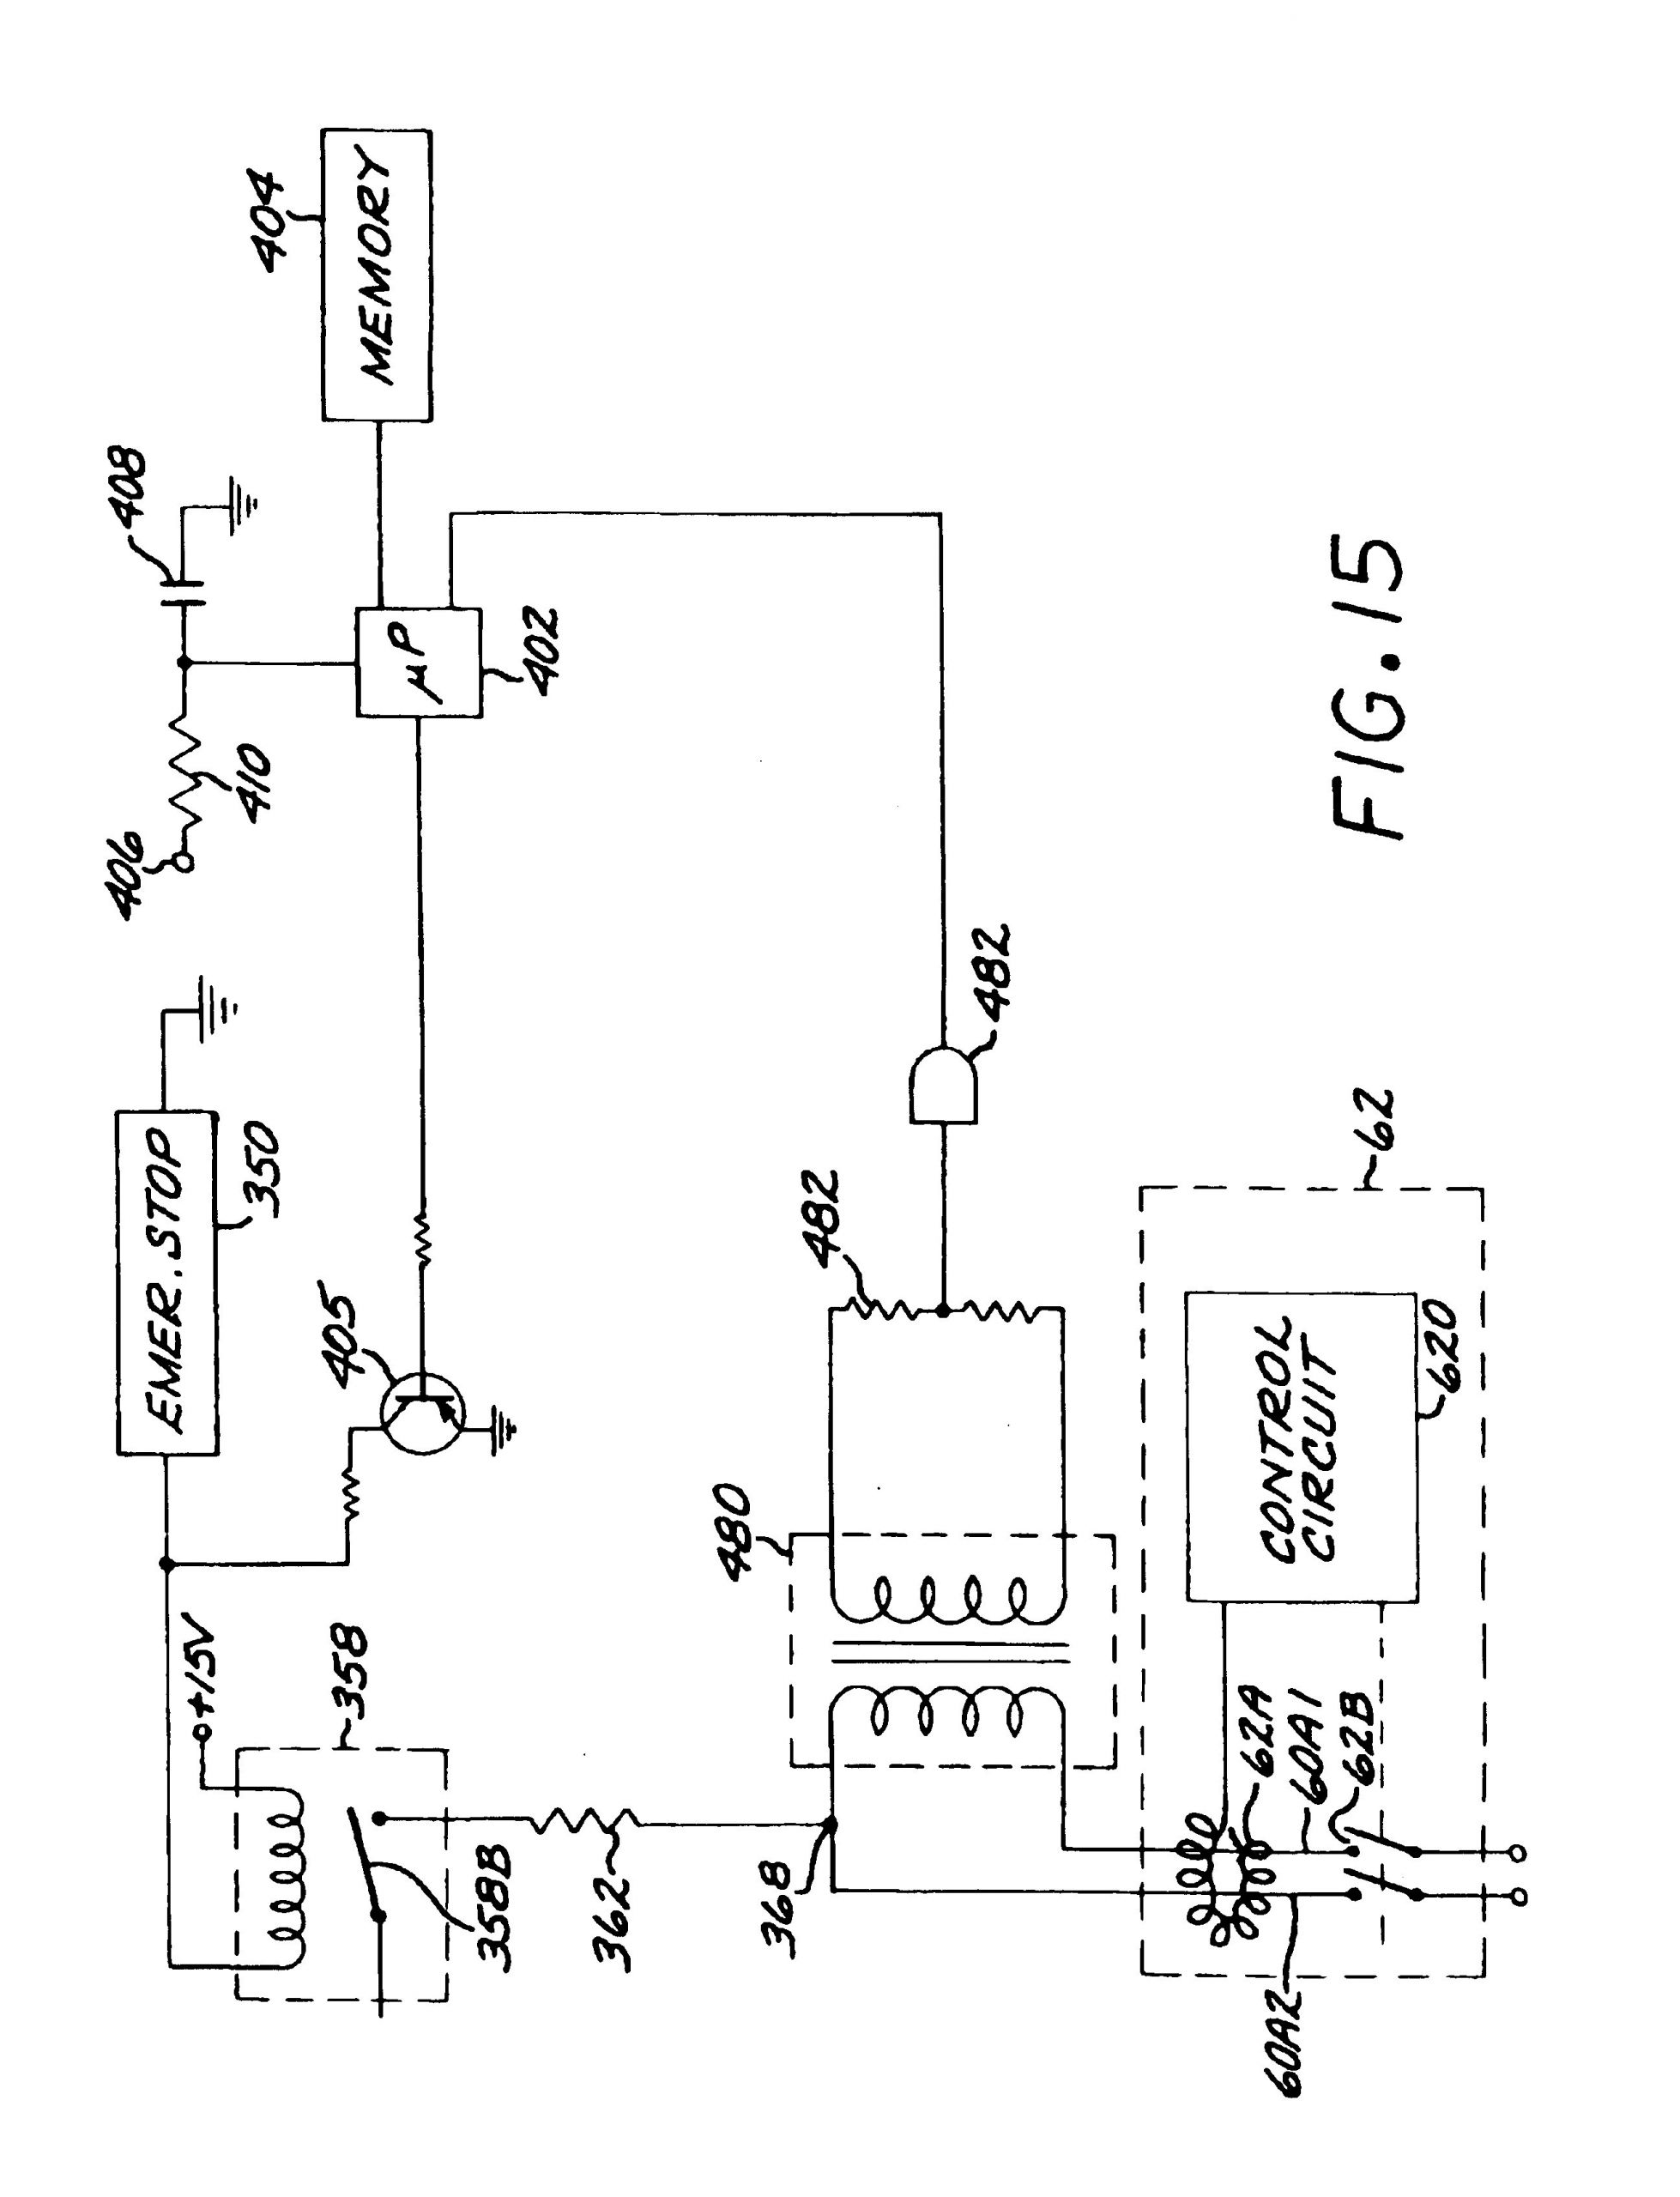 Pump Start Relay Wiring Diagram Find Out Here Irrigation Pump Start Relay Wiring Diagram Sample Of Pump Start Relay Wiring Diagram